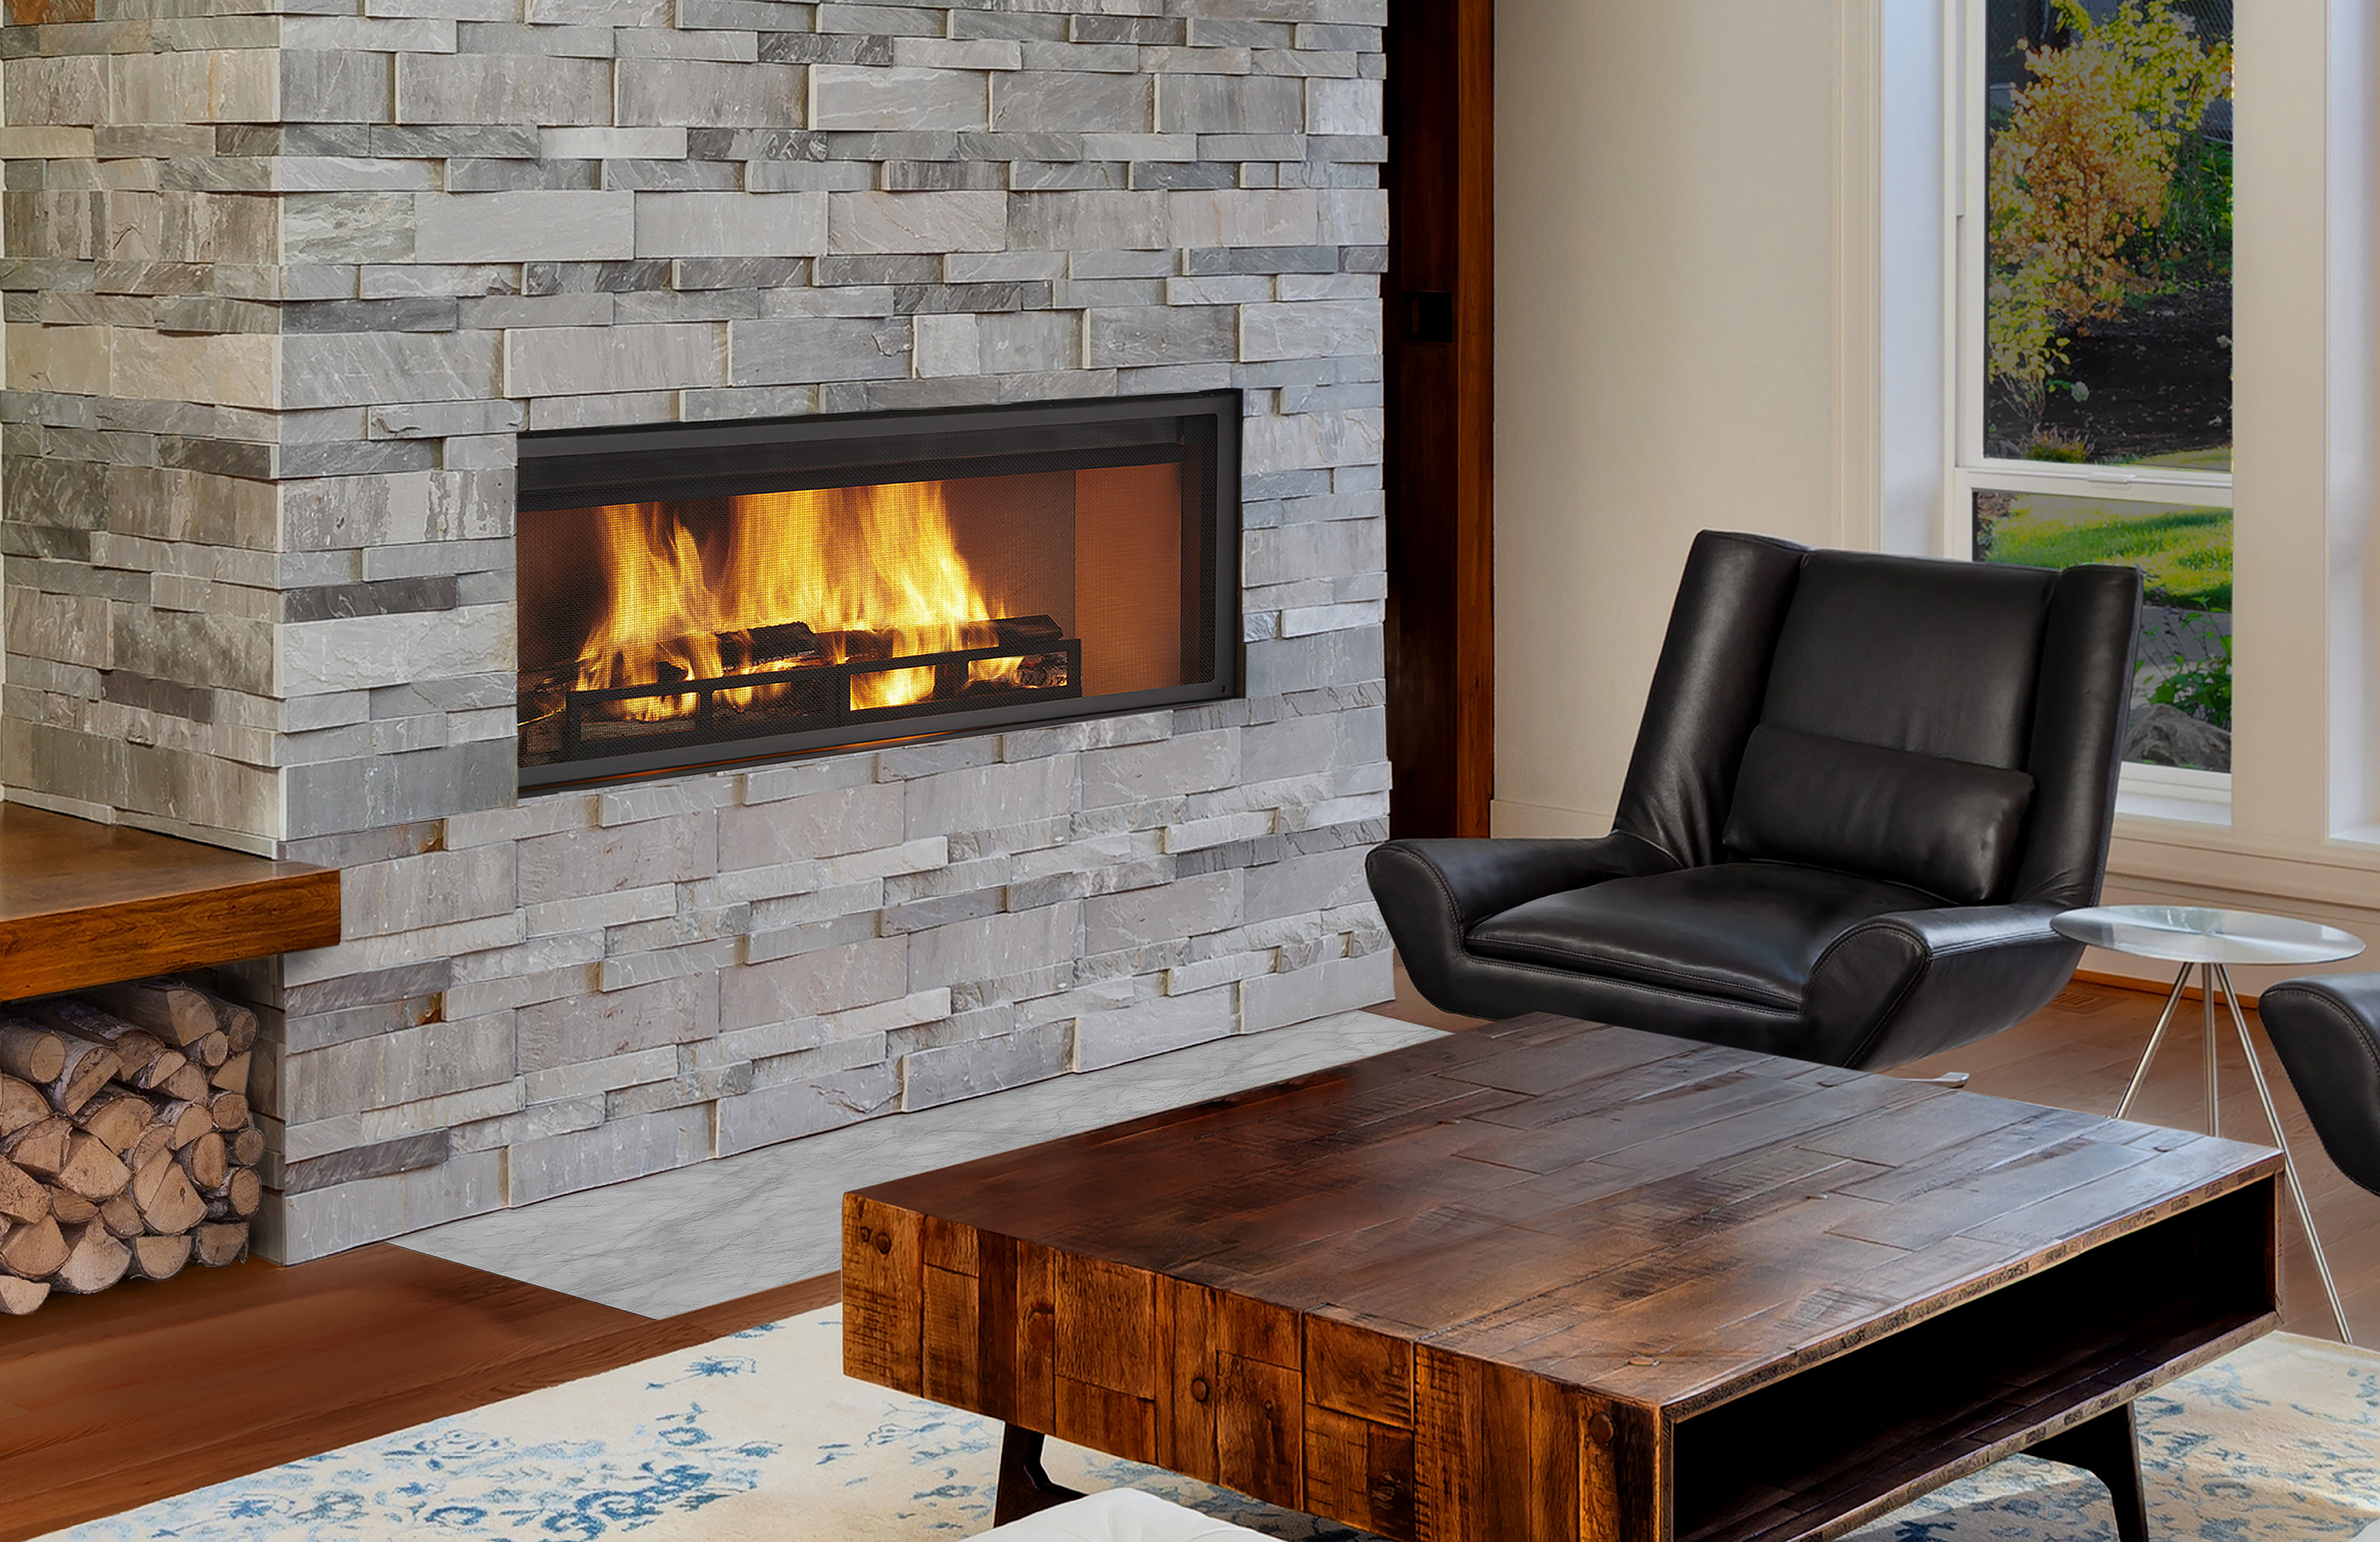 mantel poh vernon installation mantels our vent mount fireplaces direct kingston heatilator a is the blog photo of here gorgeous mantle fireplace an with